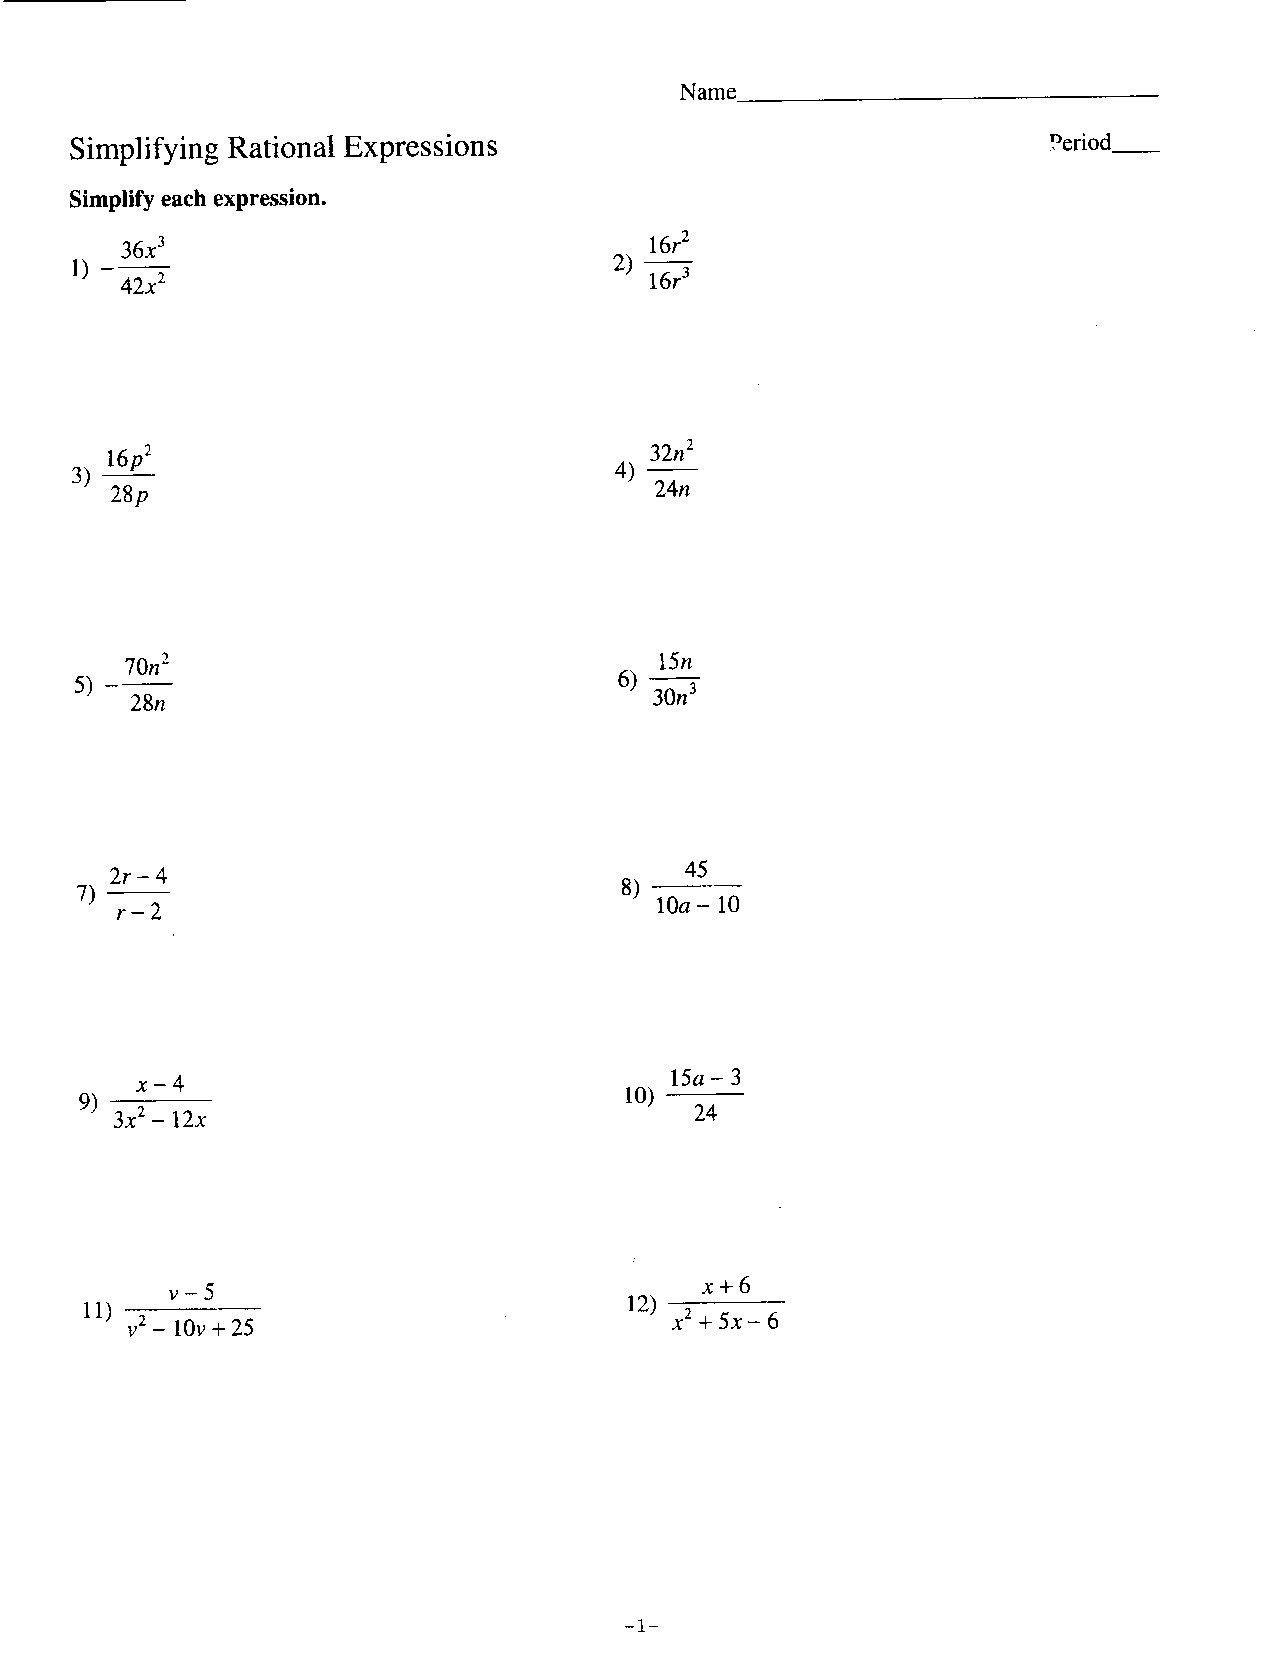 50 Simplifying Algebraic Expressions Worksheet Answers